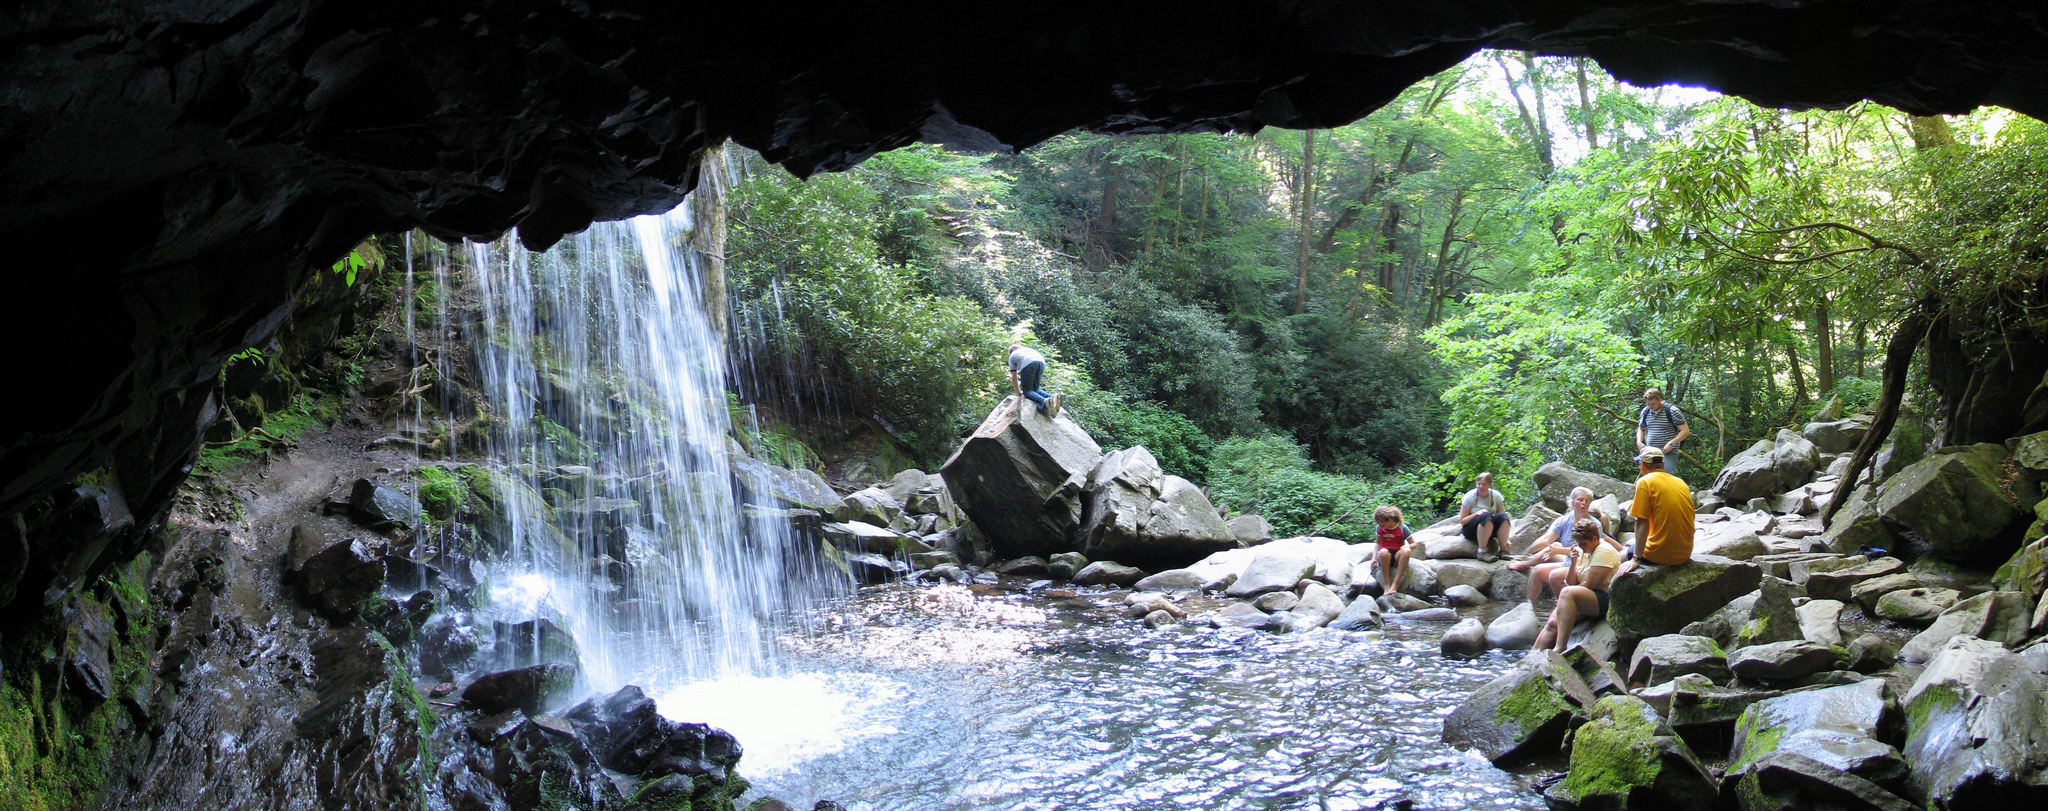 epic tennessee hiking spots you never knew existed